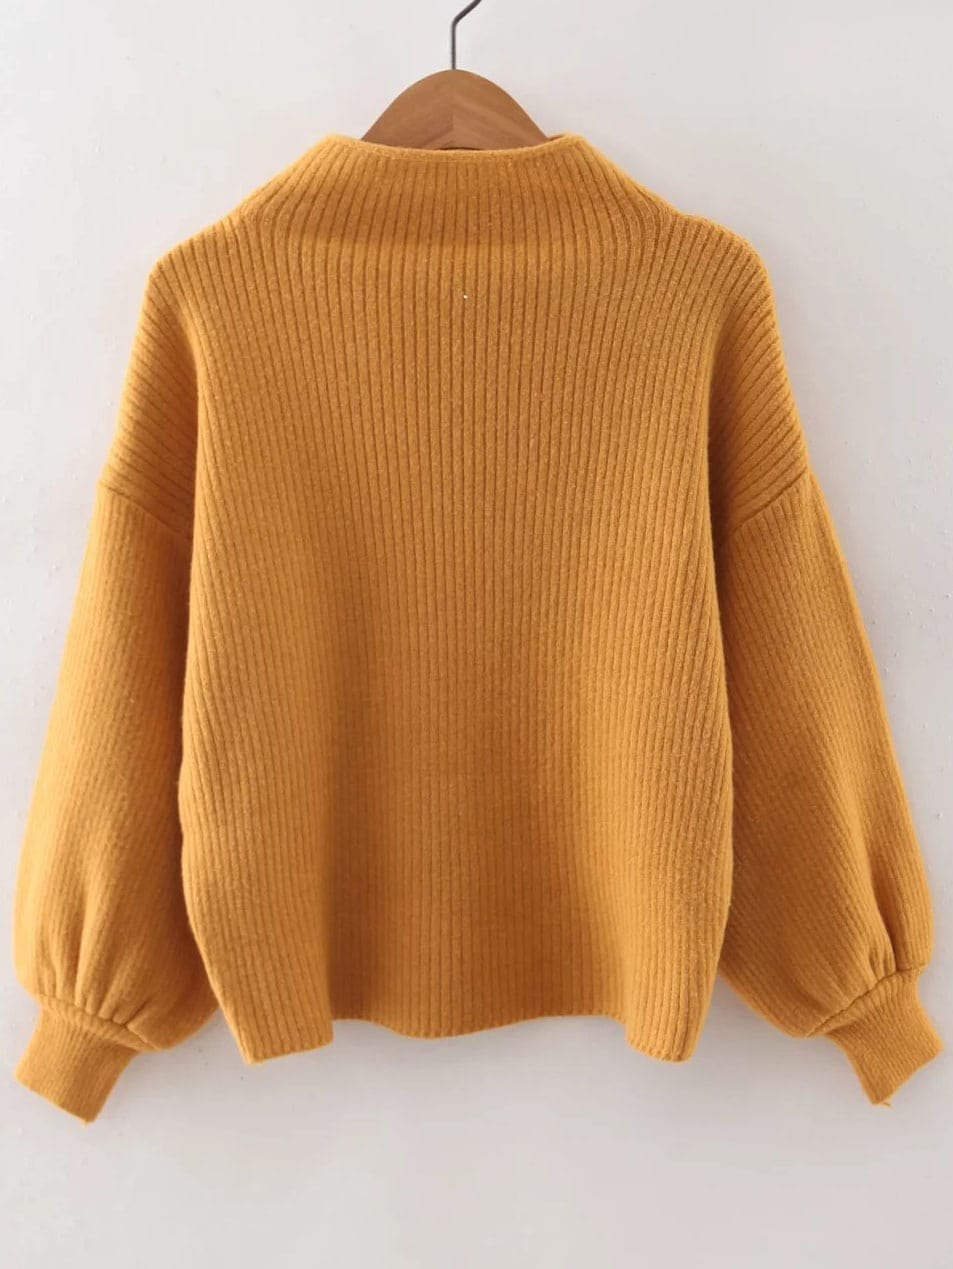 Yellow Ribbed Lantern Sleeve Loose Knitwear sweater160817227